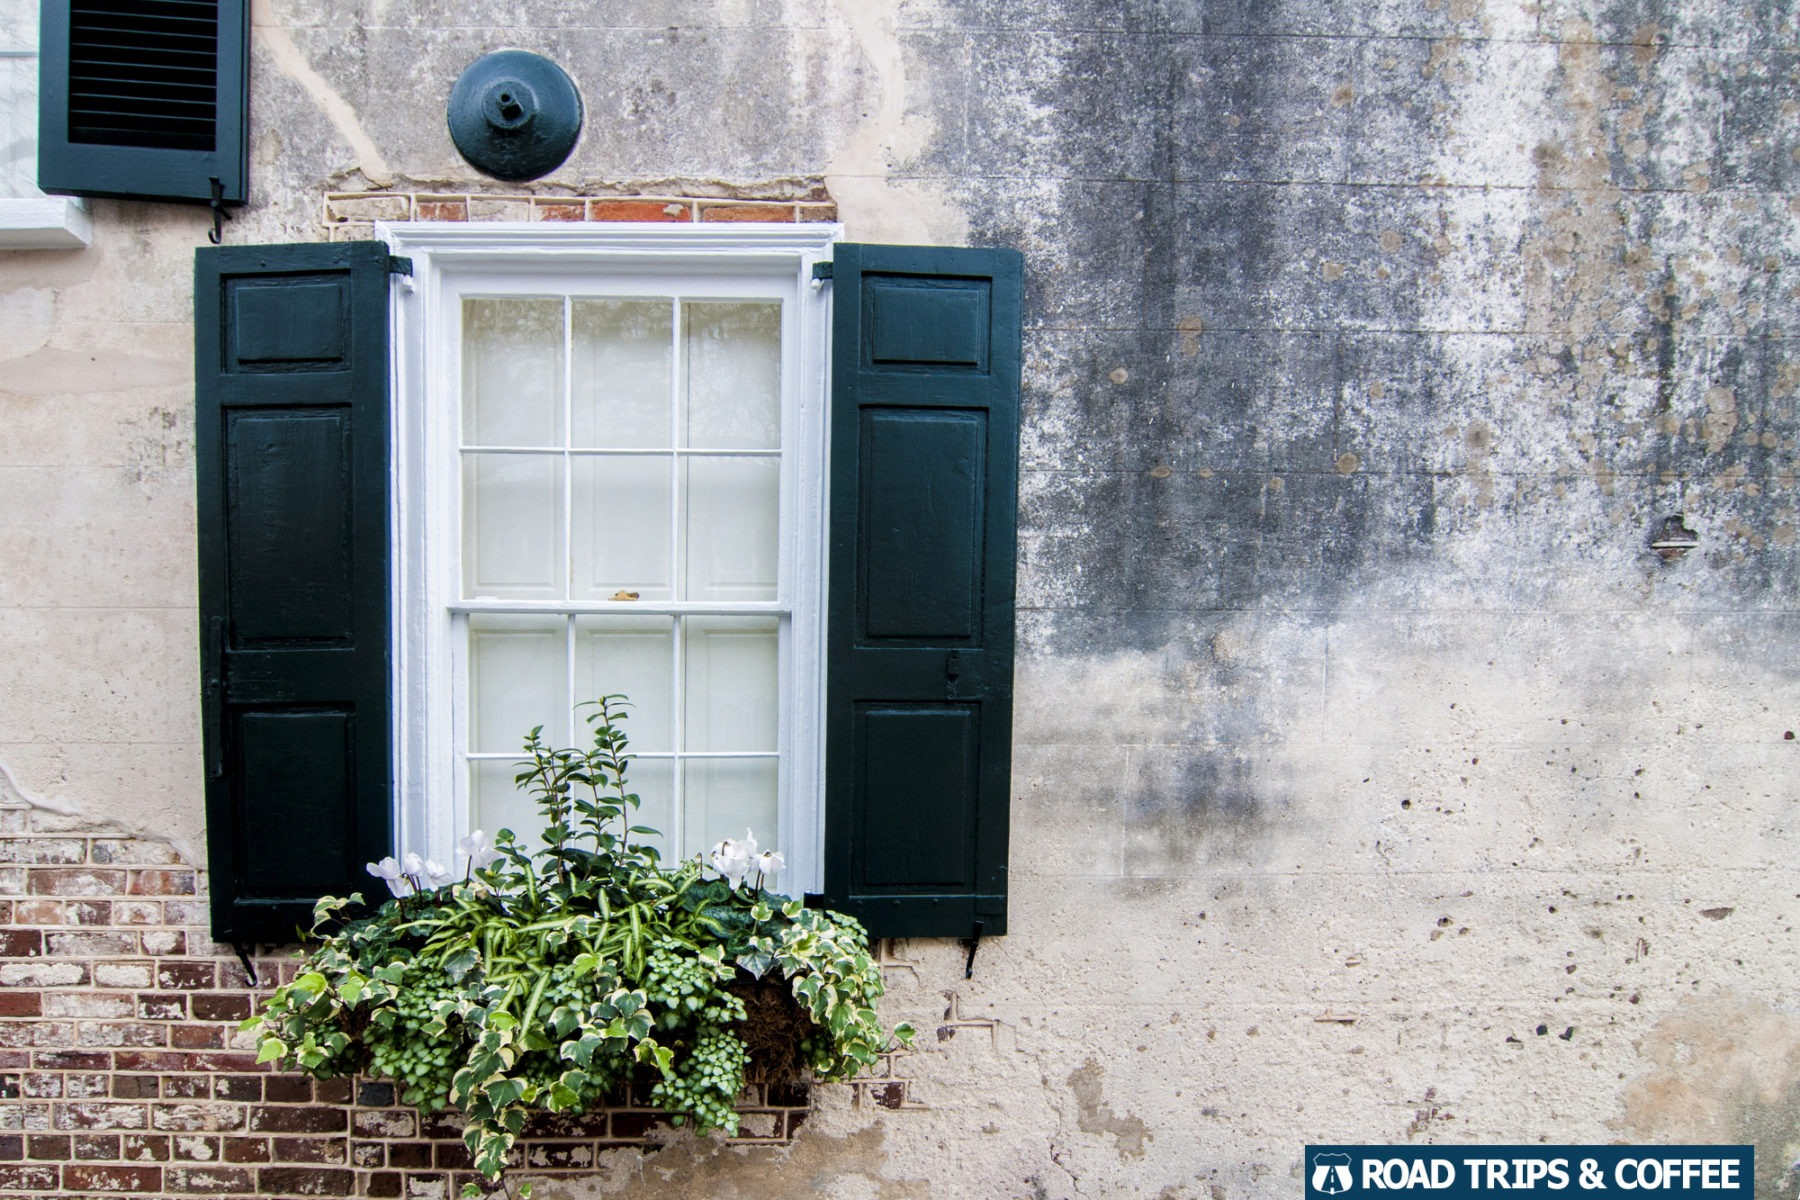 A flower box in front of a window at a home in Charleston, South Carolina